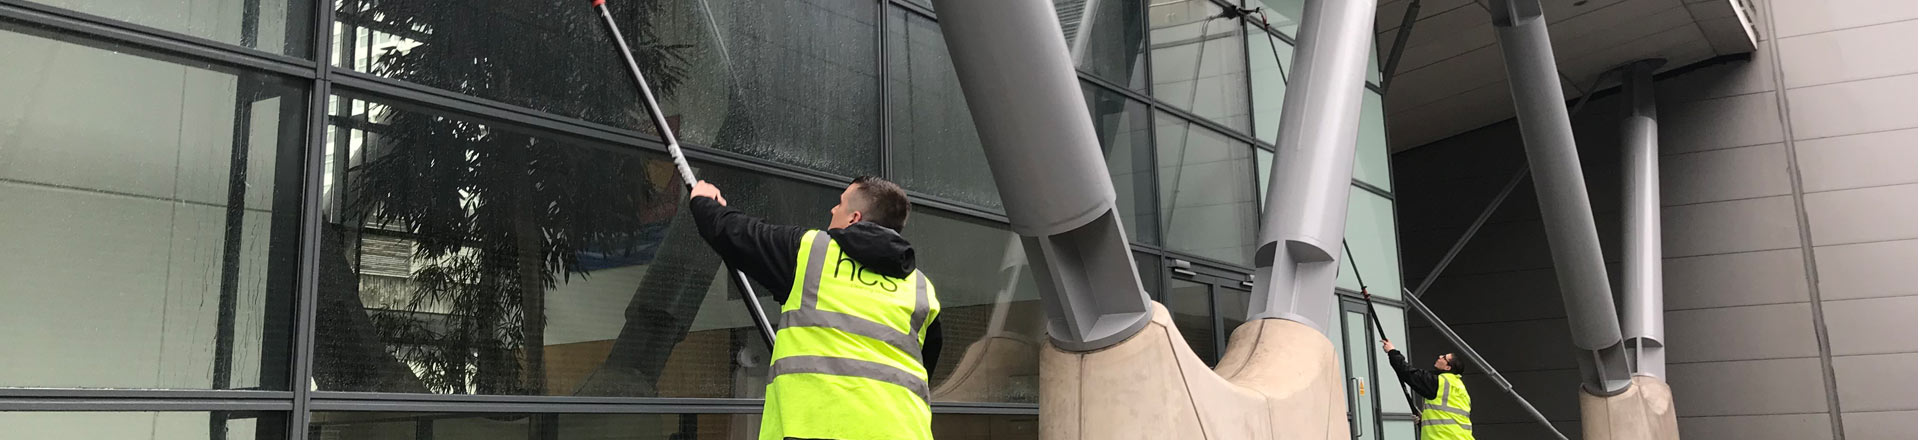 Specialist Window Cleaning Services in Manchester and the North West - HCS Cleaning Services